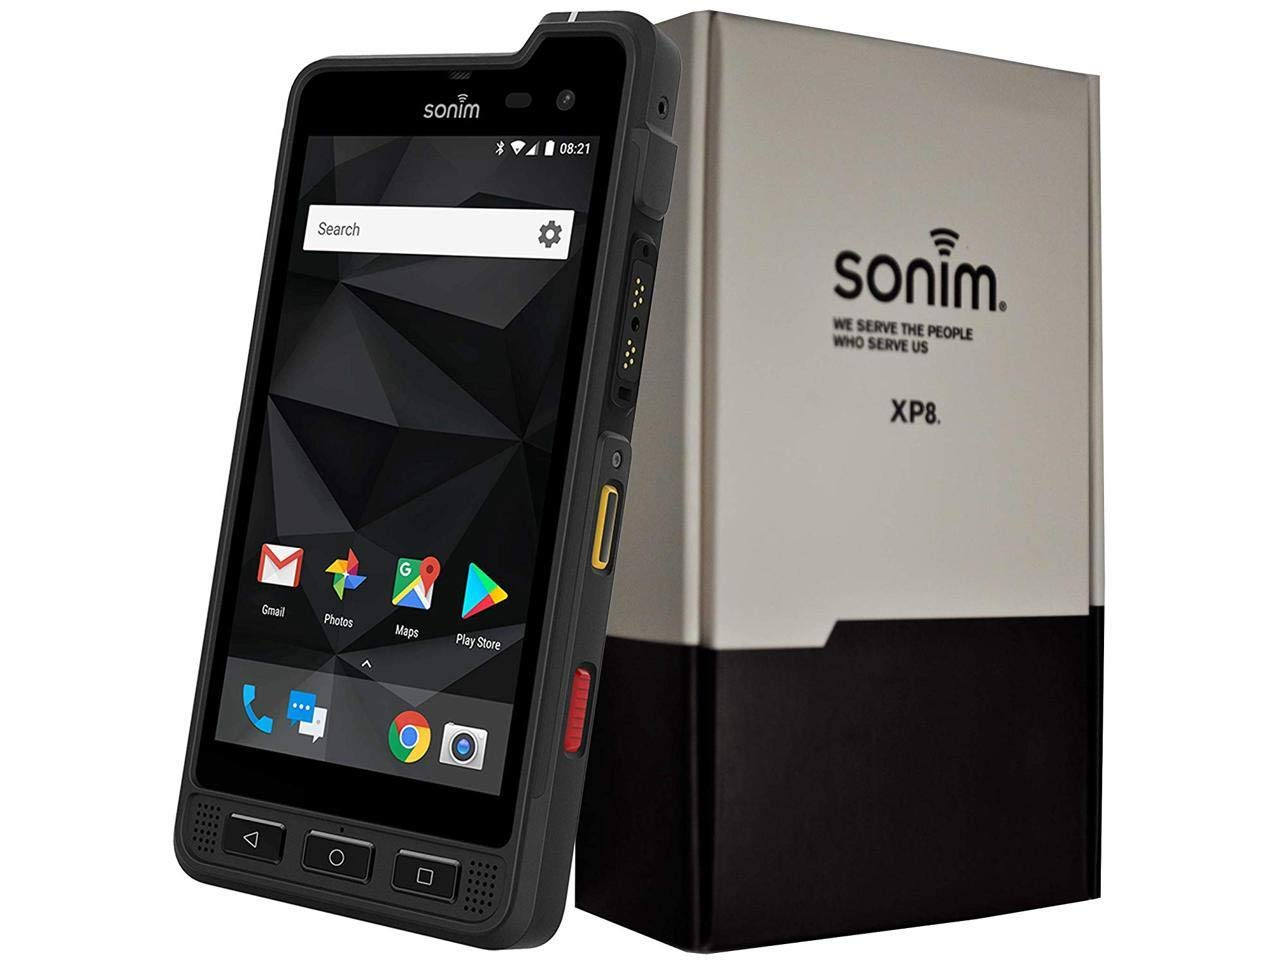 Amazon.com: Sonim XP8 XP8800 - Smartphone (64 GB, sin CDMA ...